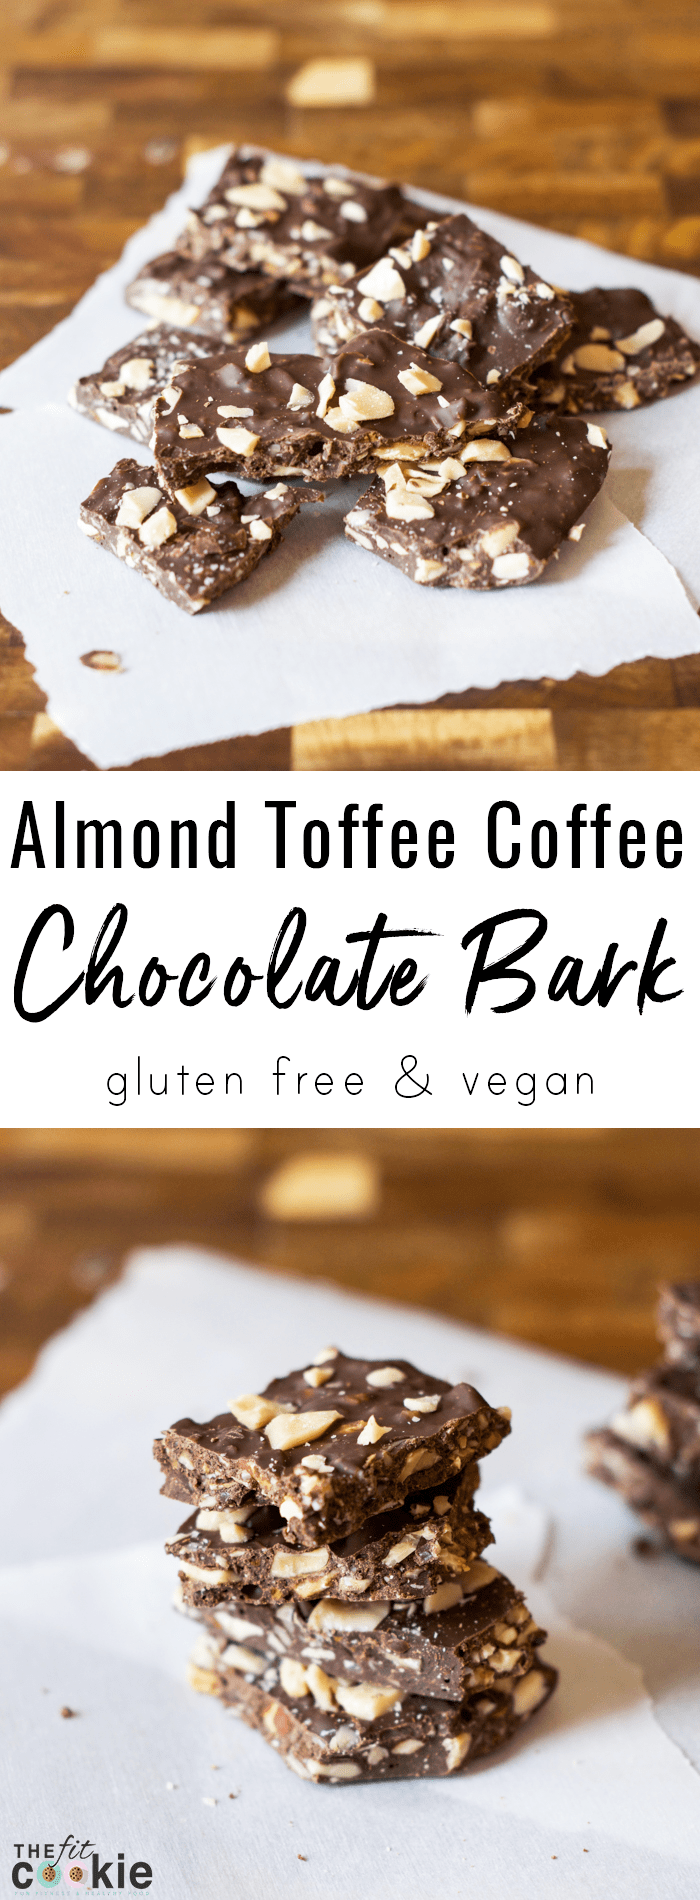 Skip the store bought candy bars and make some dairy free and vegan Almond Toffee Coffee Chocolate Bark at home instead! This recipe is also gluten free and has a nut-free option - @TheFitCookie #chocolate #glutenfree #vegan #dairyfree